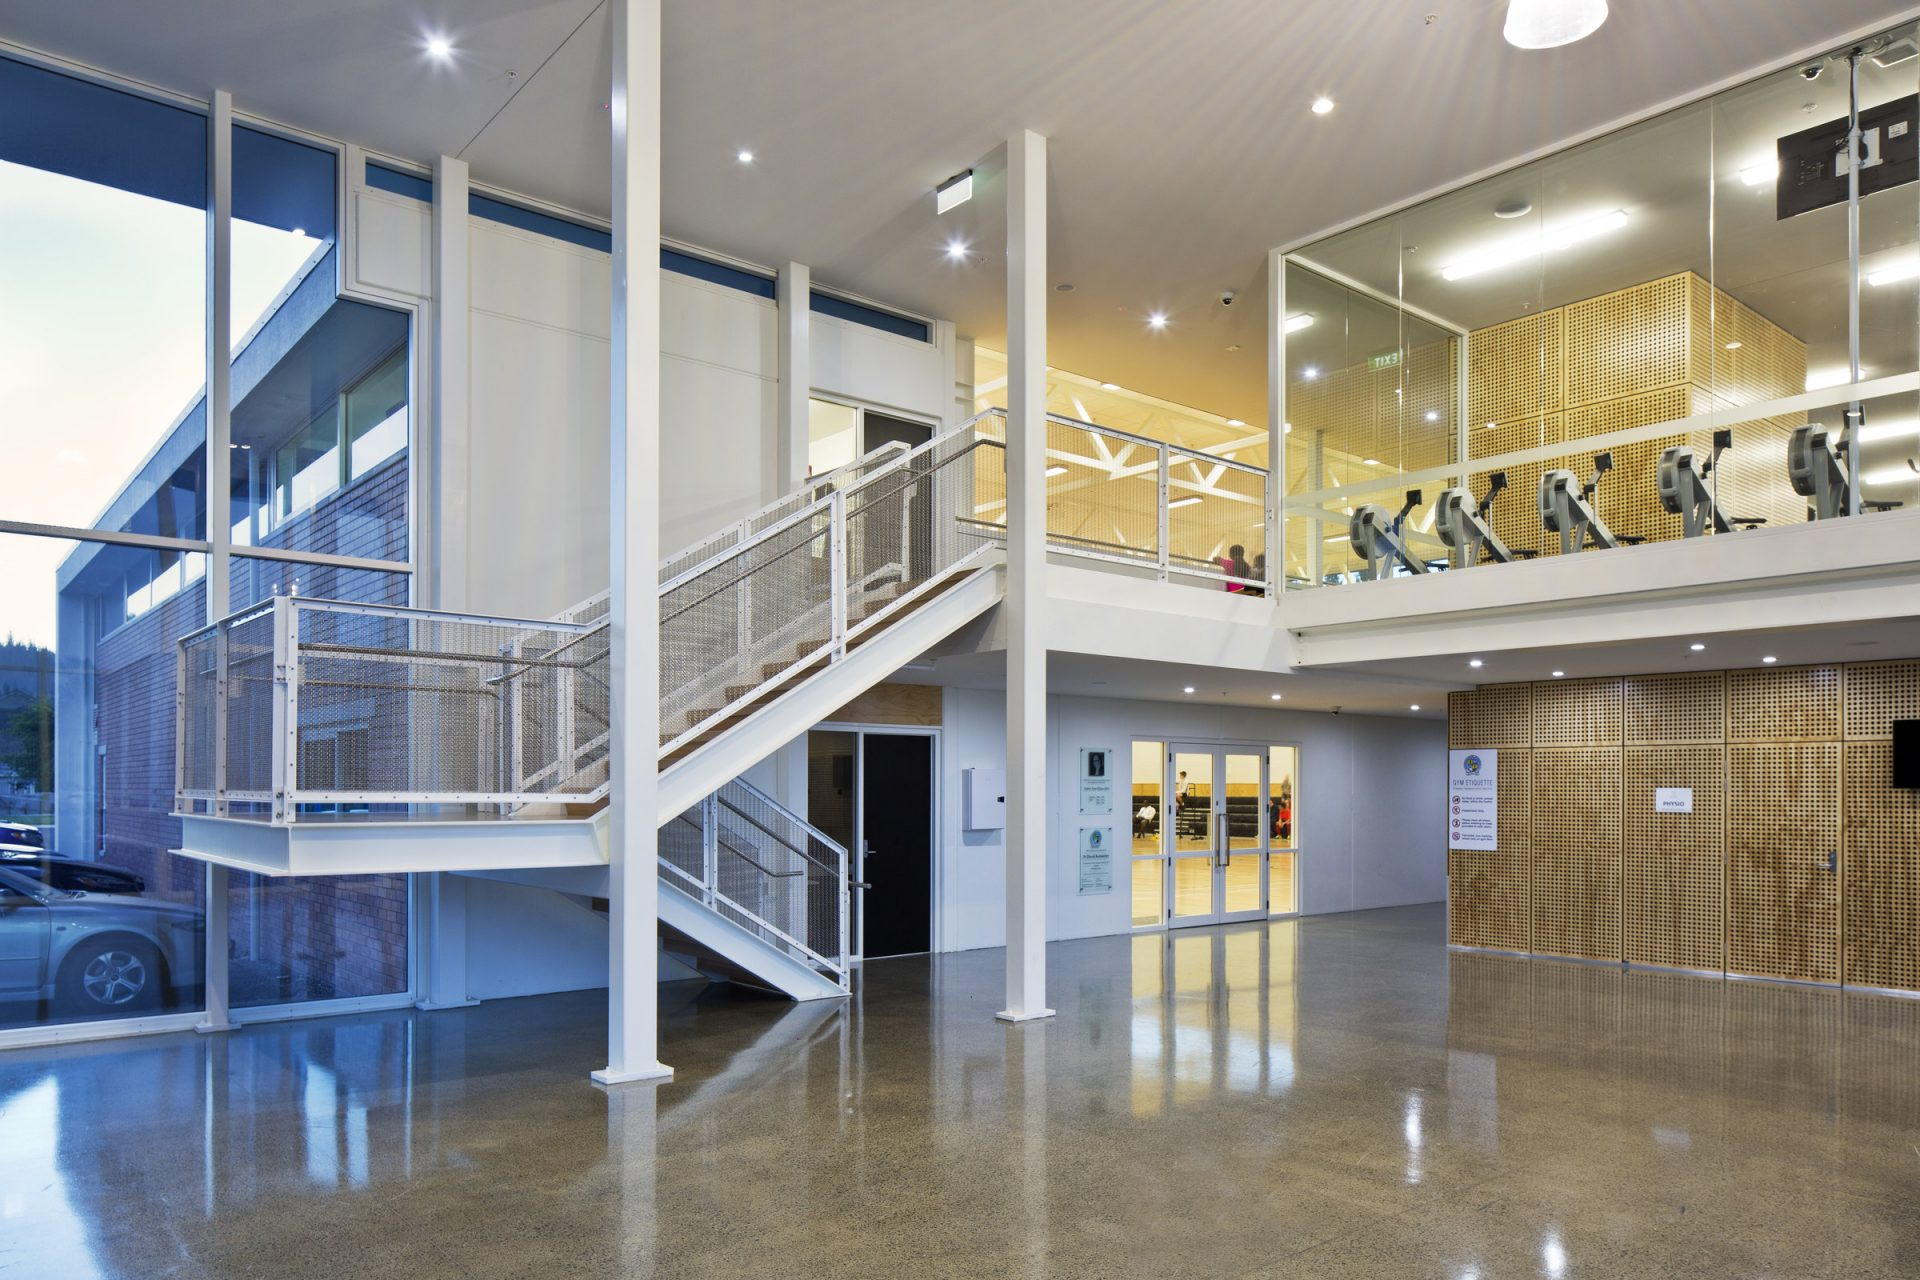 St Patrick's College Silverstream New Sports Hub_Entrance Lobby_ 6 of 6